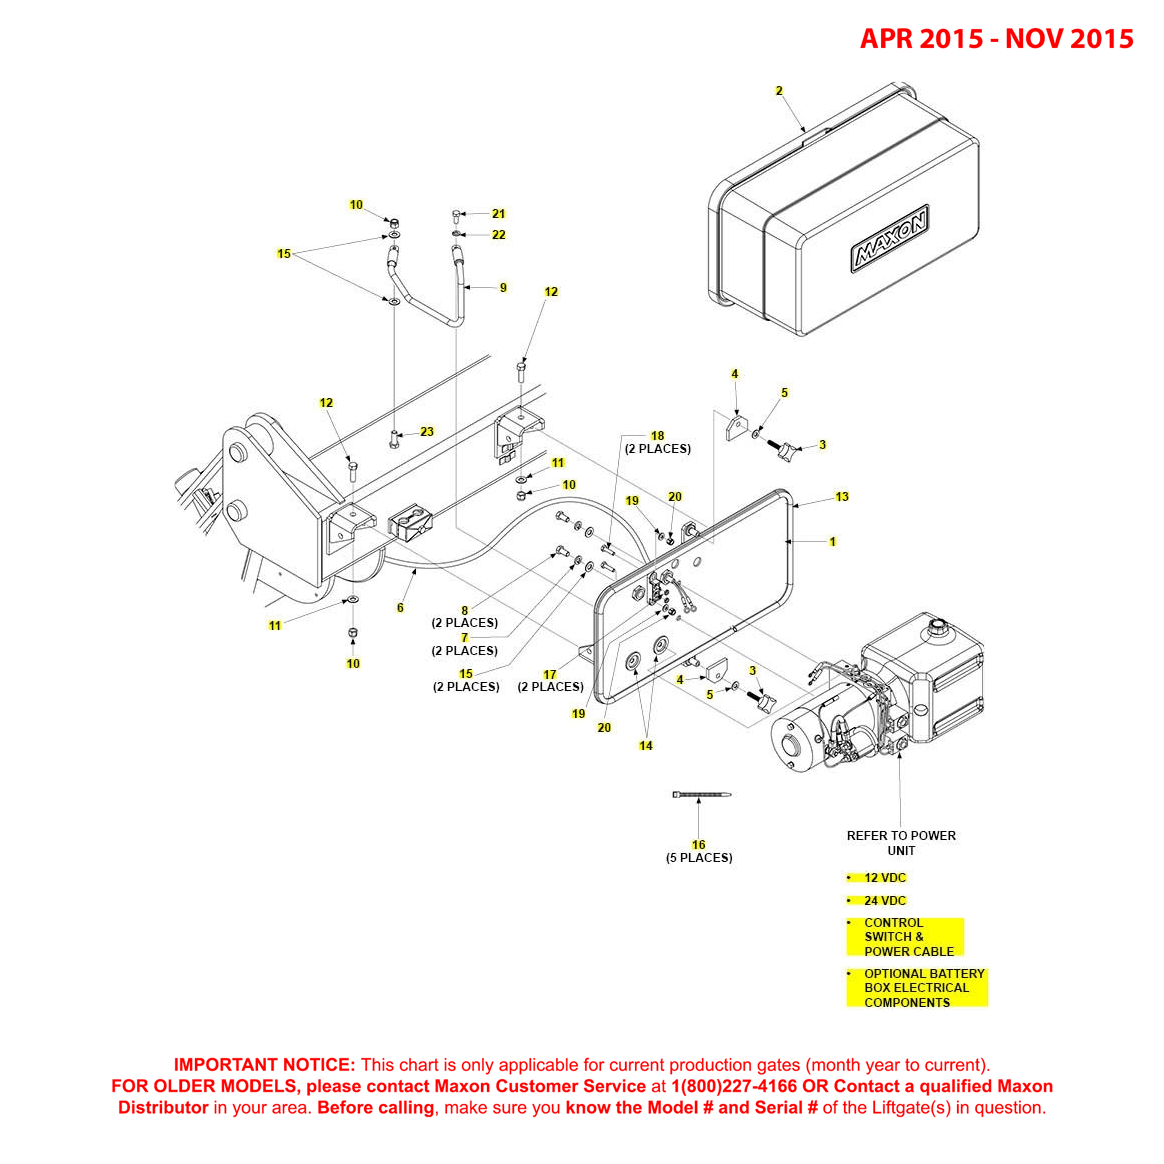 GPT (Apr 2015 - Nov 2015) Pump Cover And Mounting Plate Assembly Diagram